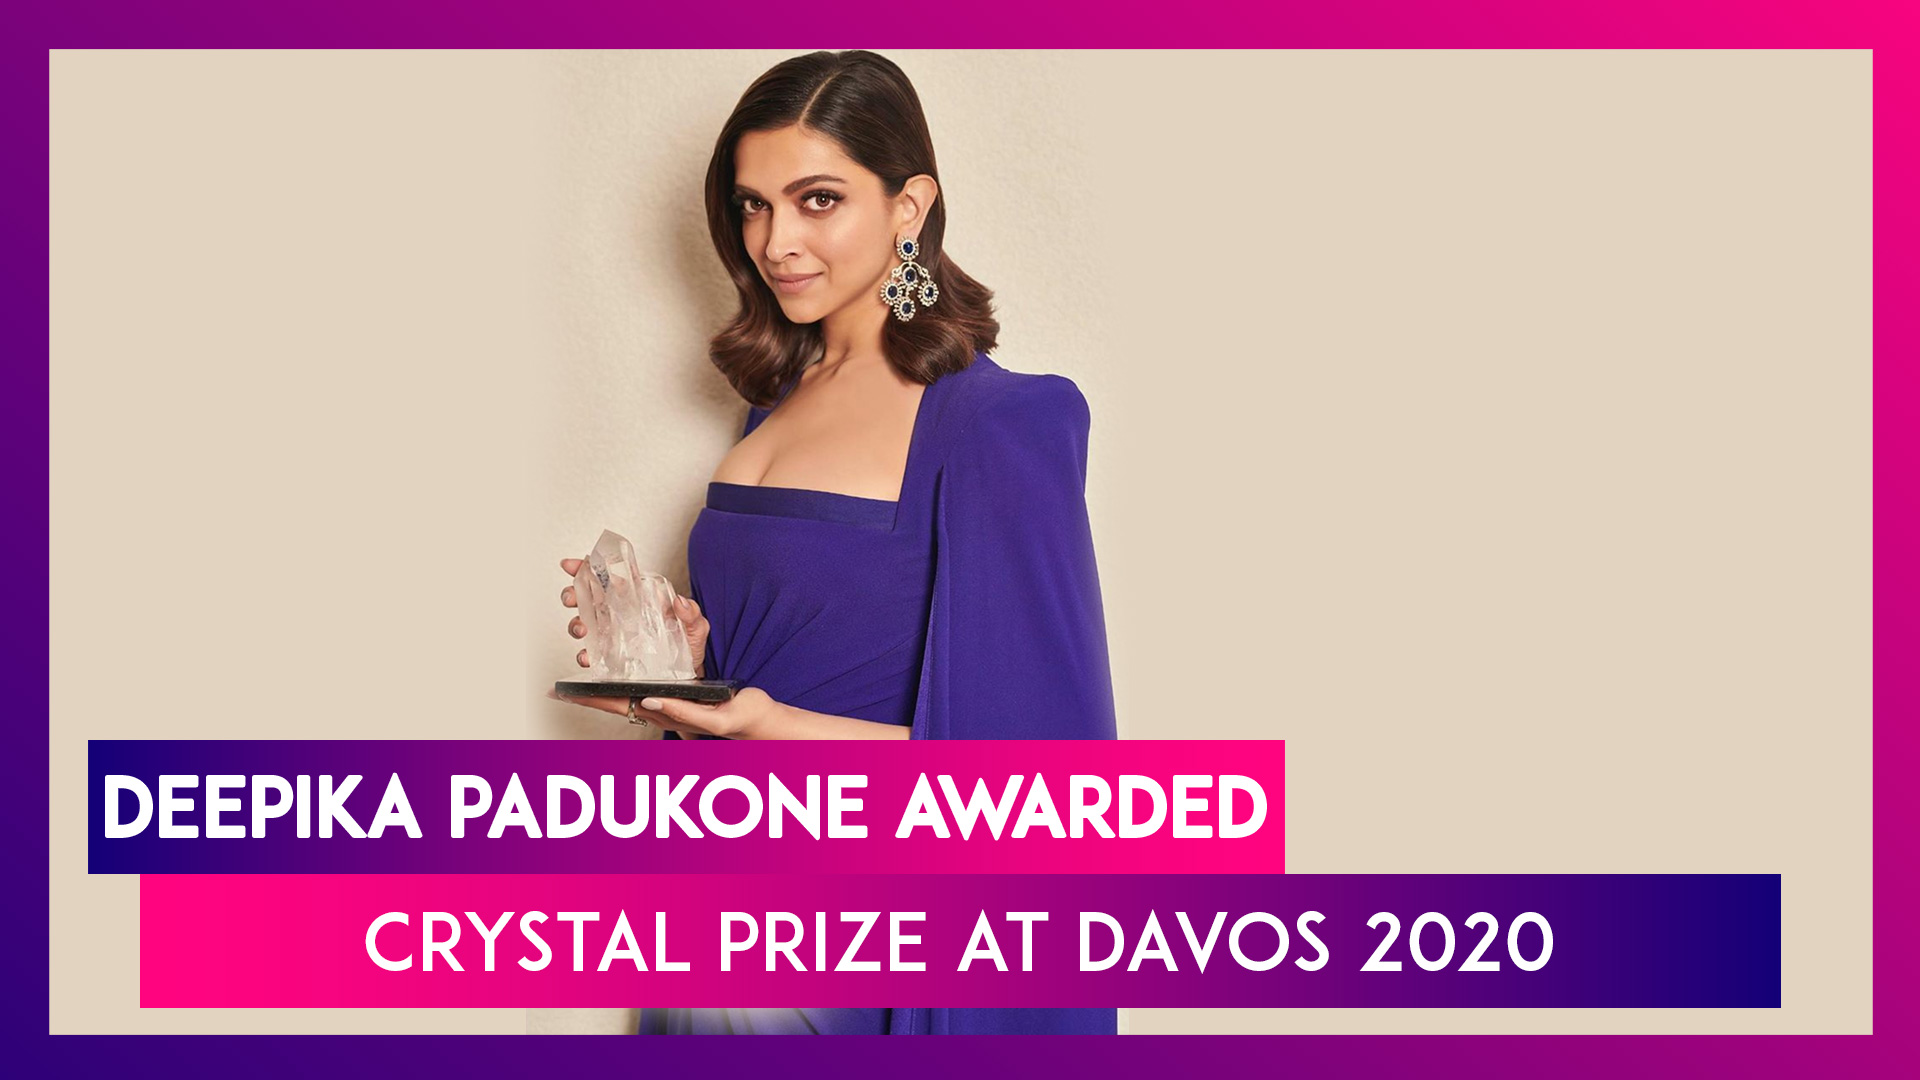 Deepika Padukone Recipient Of The 26th Crystal Award, Speaks About Fighting Depression At Davos 2020